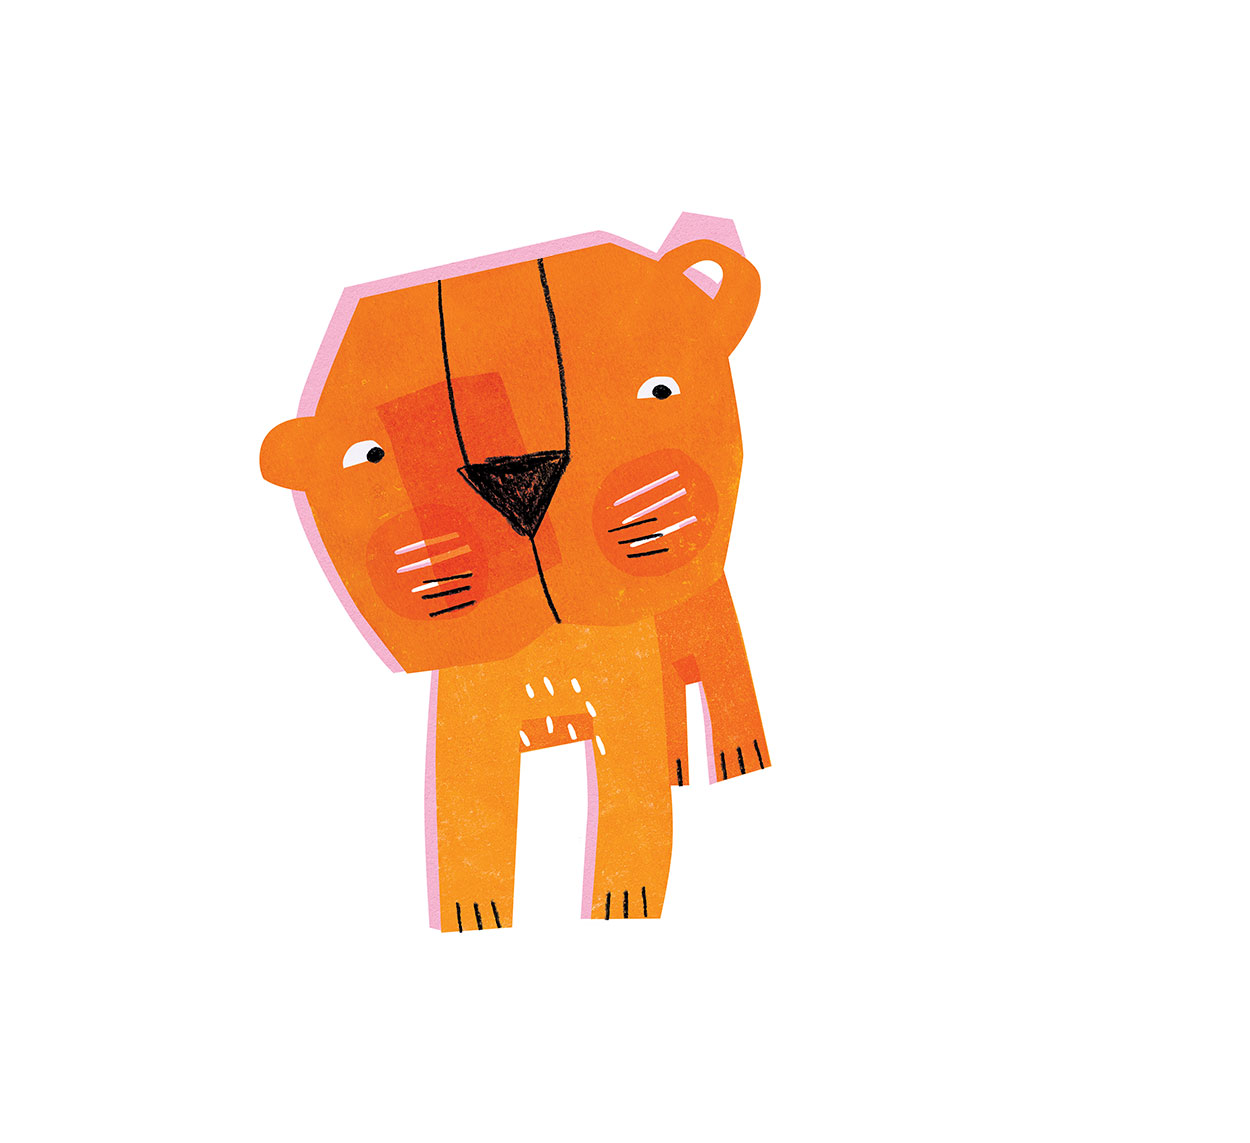 cub-standing-about-image.jpg